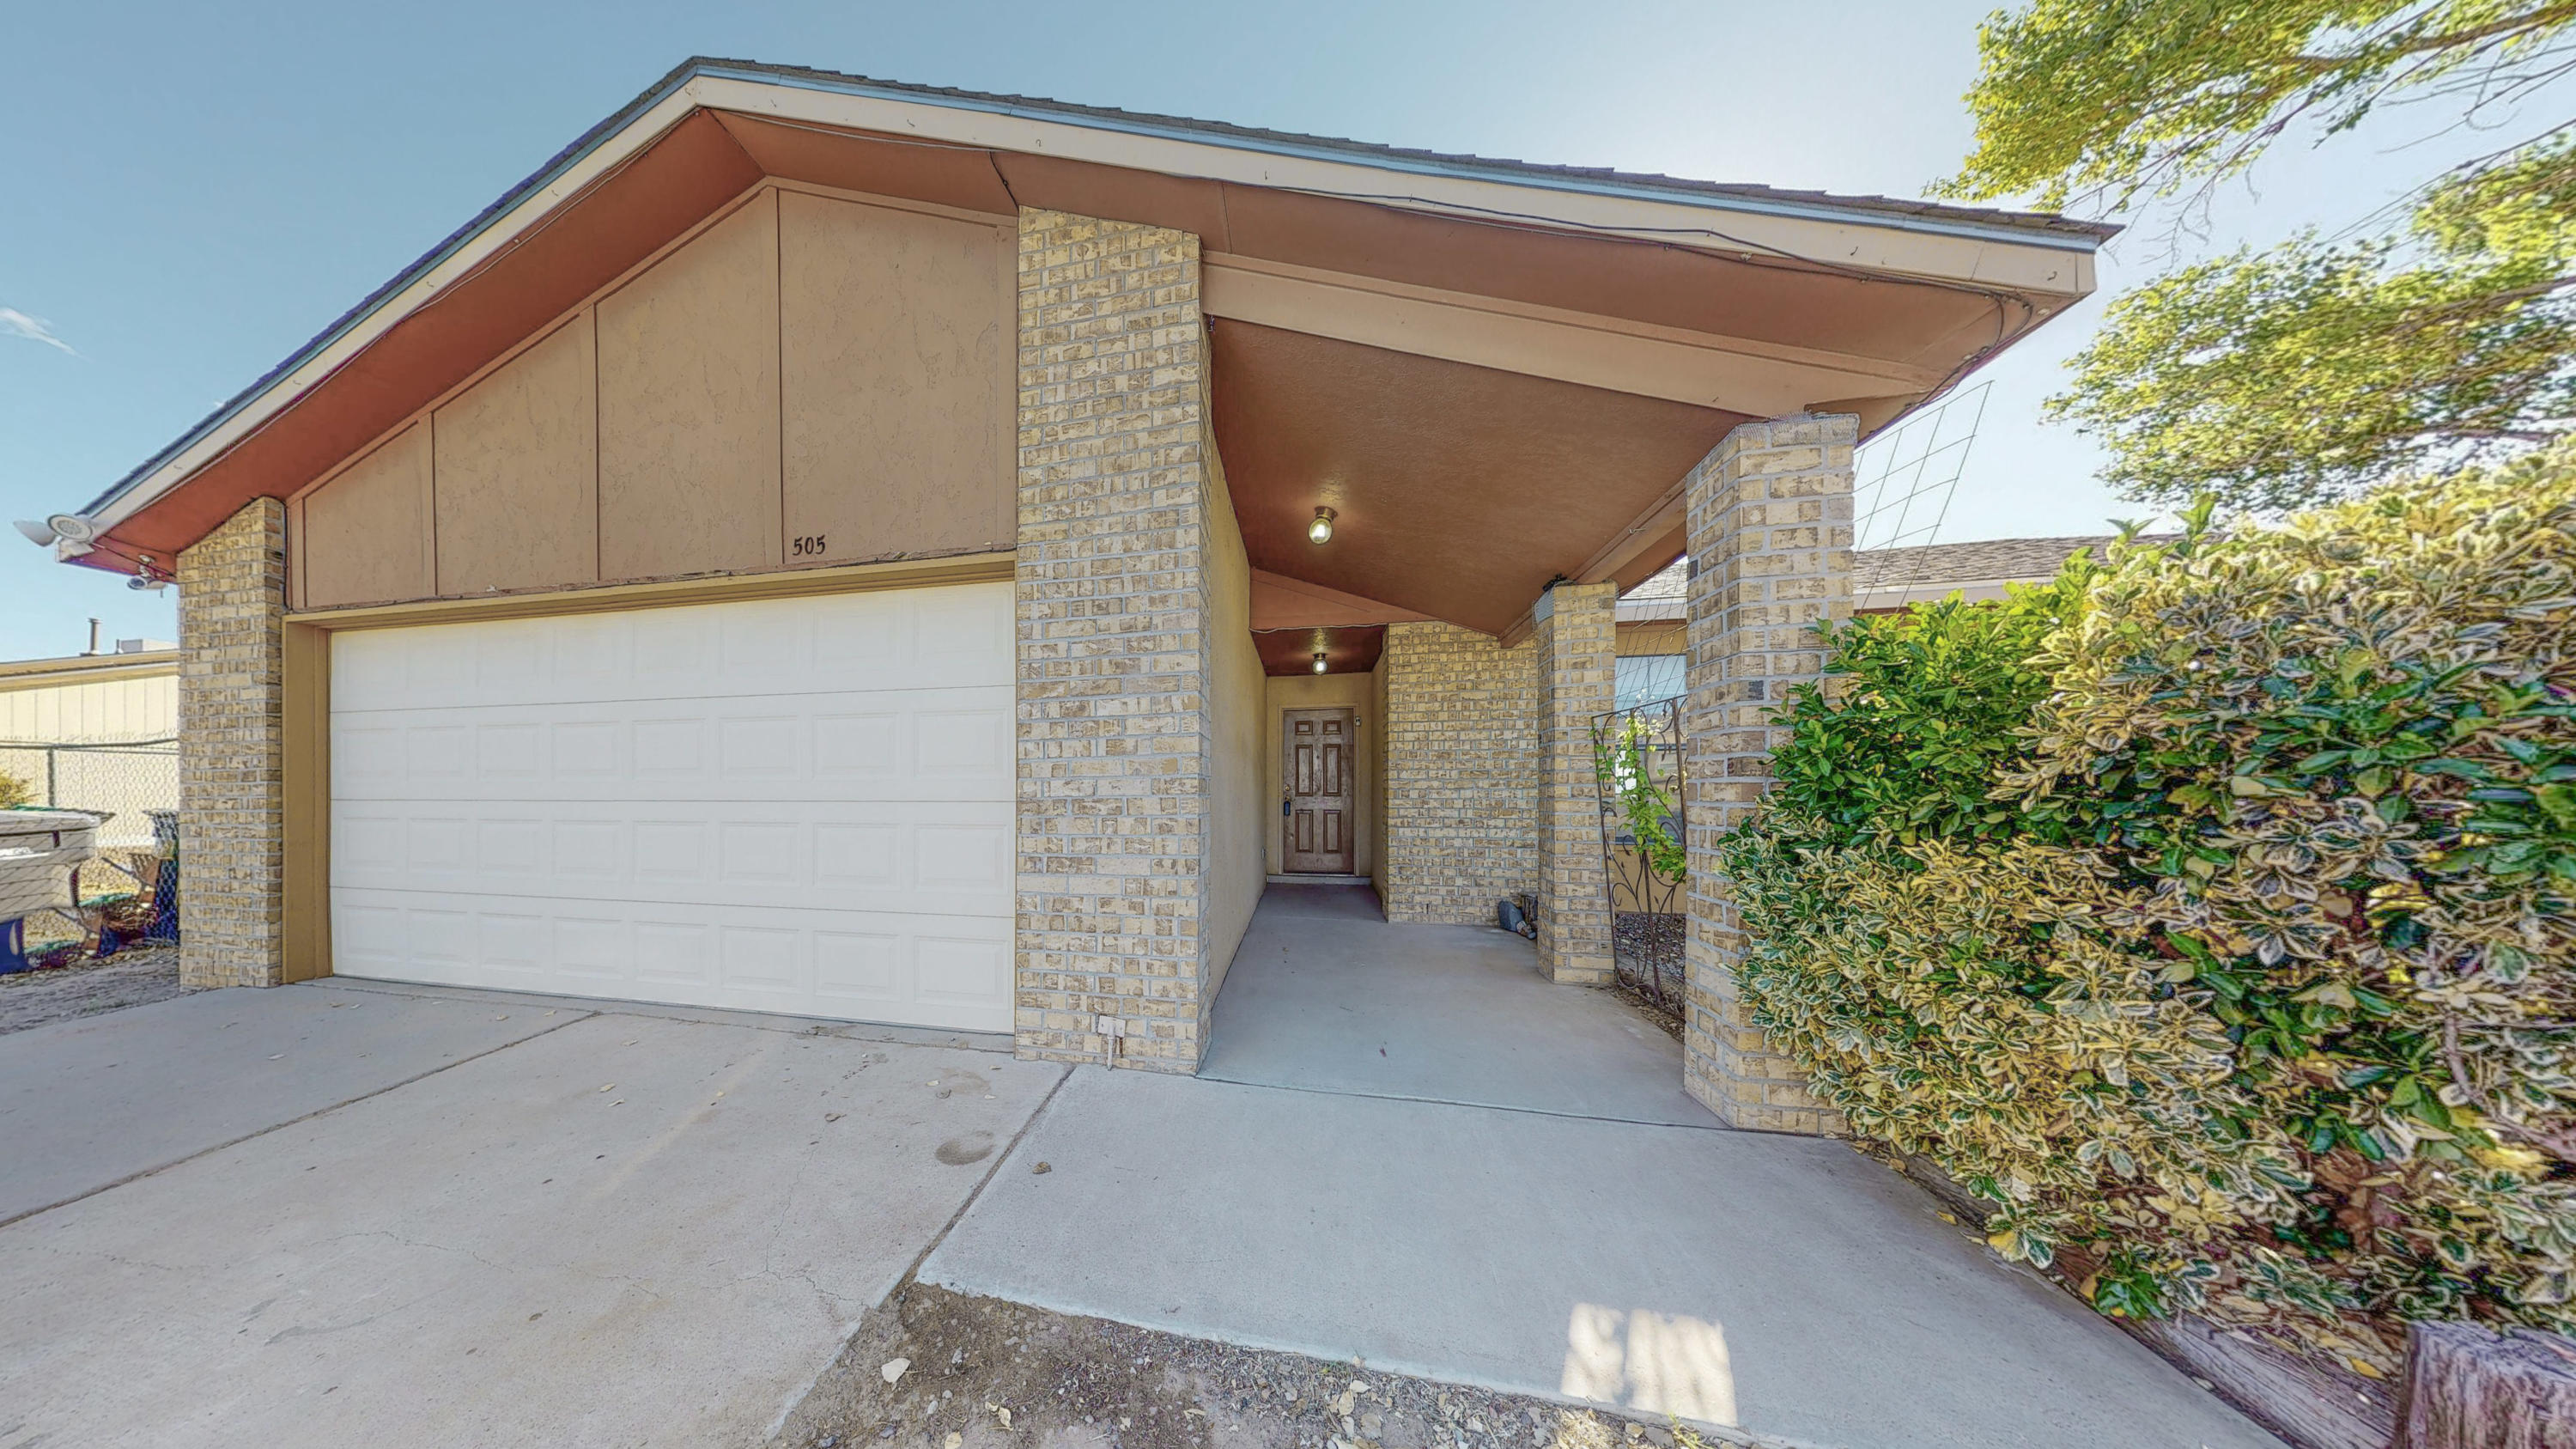 Great location in central Rio Rancho! Freshly painted with new carpet in main living areas and bedrooms.  Beautiful water proof vinyl flooring in kitchen and bathrooms.  Wood burning fireplace in living room.  Lots of storage throughout.  Open kitchen with space for dining and  bonus storage pantry.  Newer roof installed 5 years ago along with evaporative cooler. Polybutylene pipes have been replaced. Big backyard is a blank canvas. Check out this great place to call home!